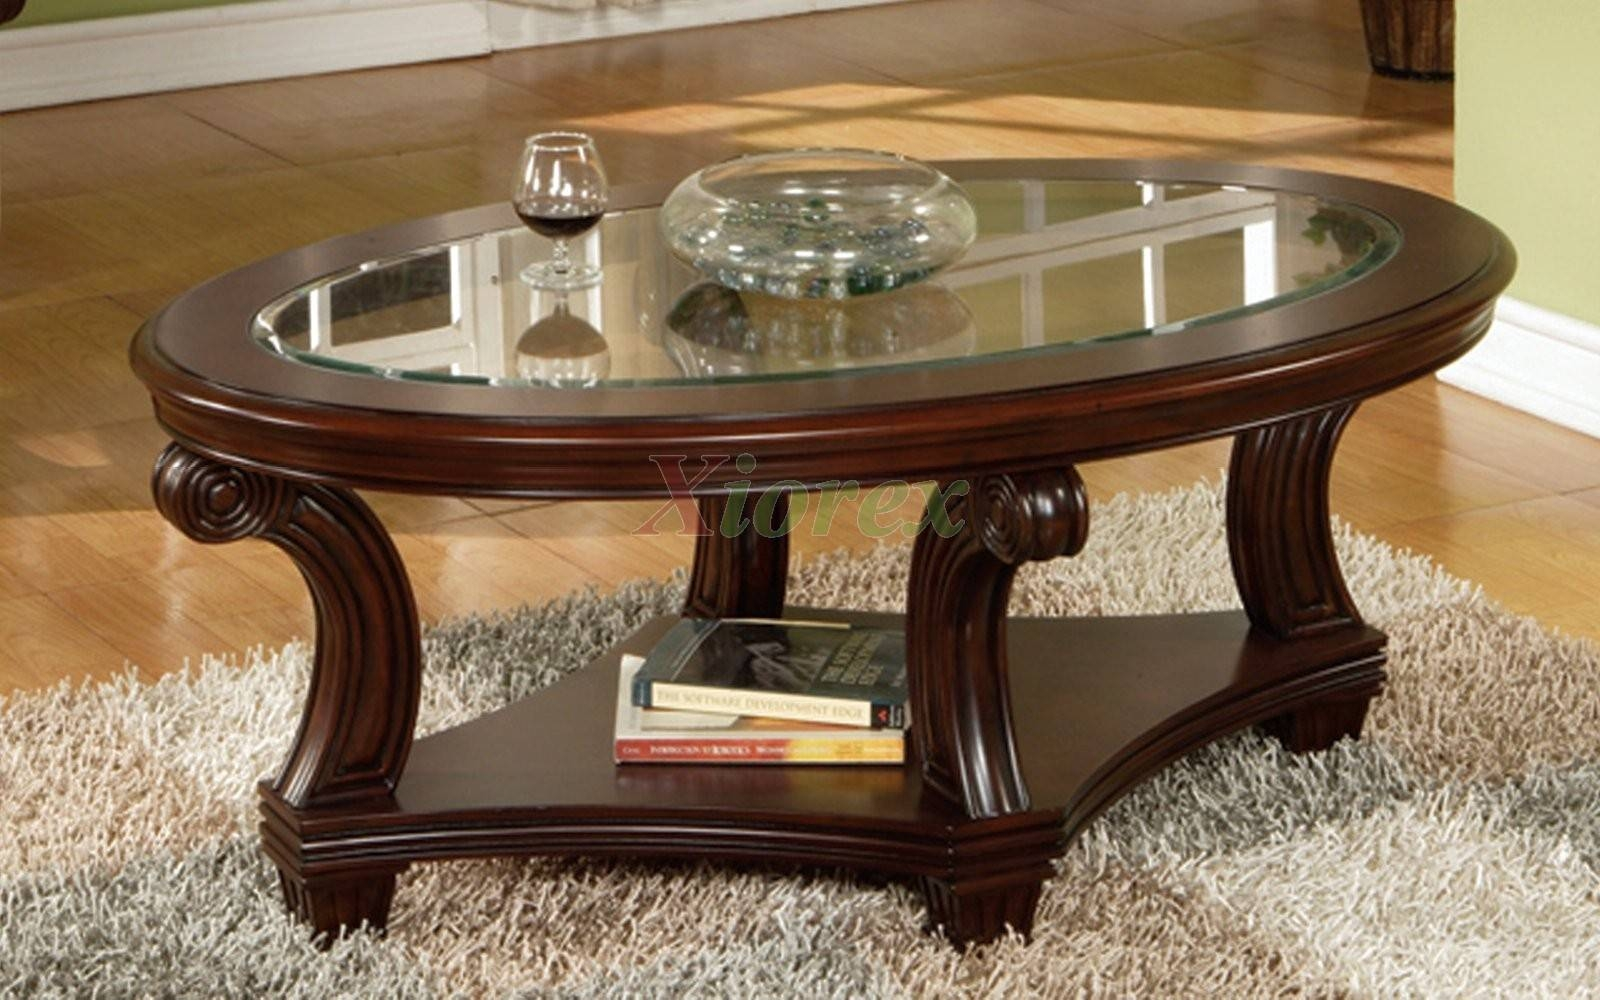 Glass Top Coffee Tables | Xiorex Furniture Stores regarding Oblong Coffee Tables (Image 17 of 30)